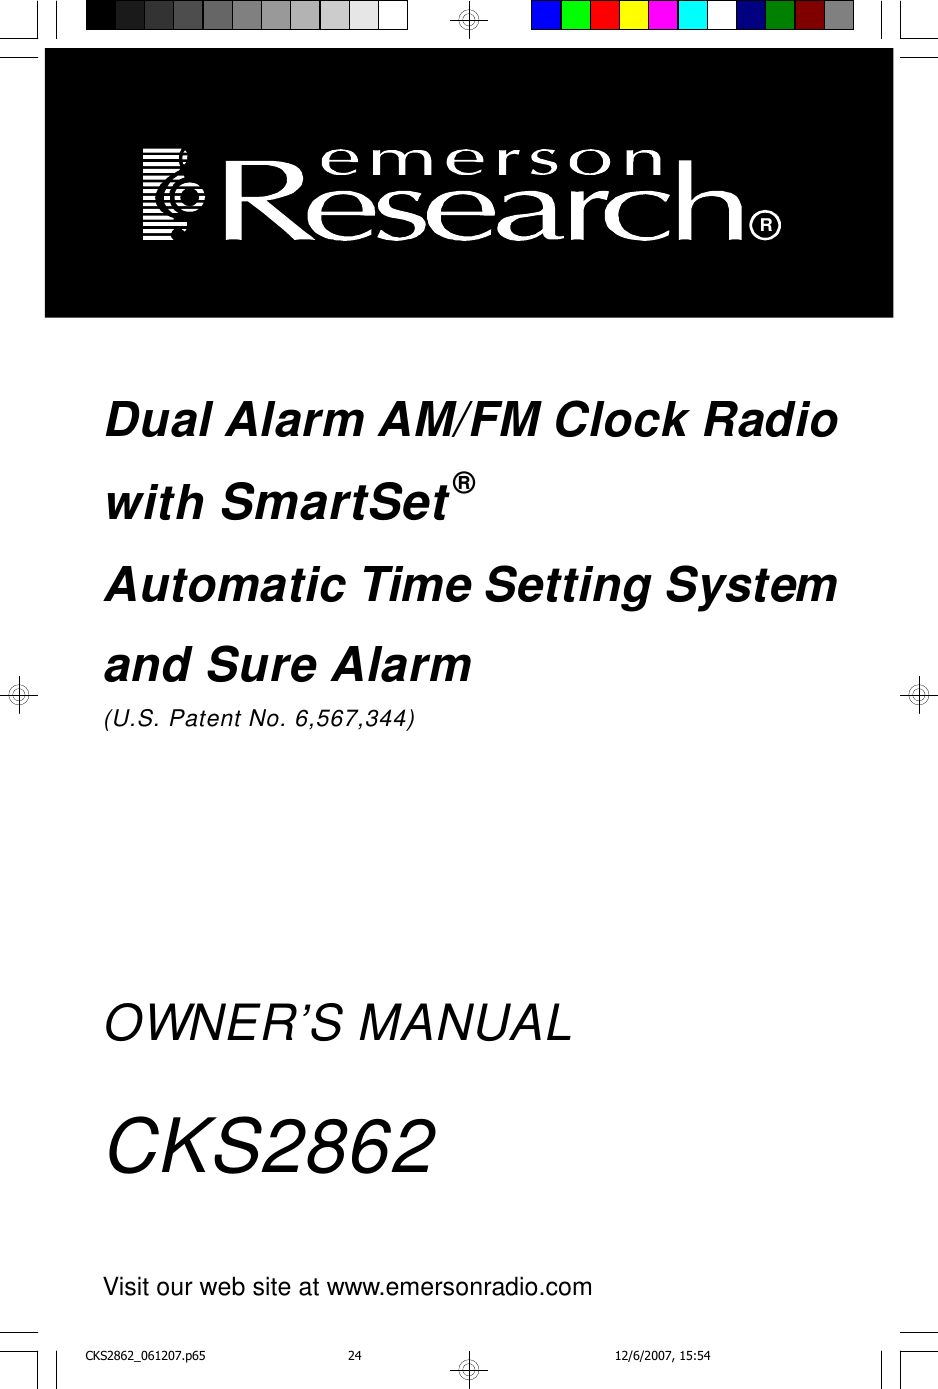 Emerson Cks2862 Owners Manual